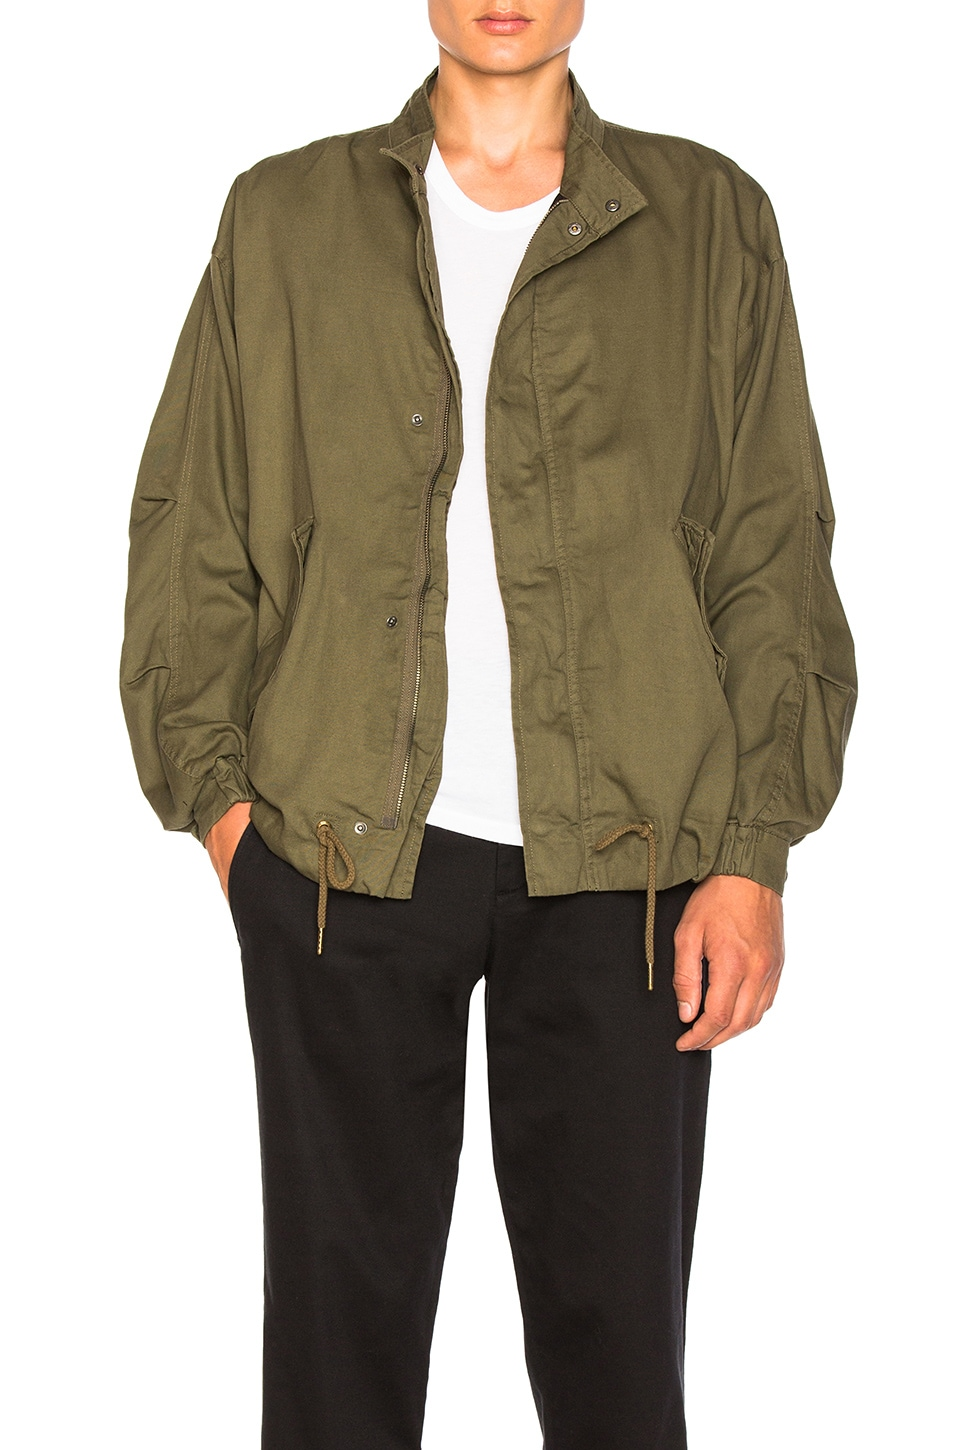 Enlisted Jacket by Barney Cools